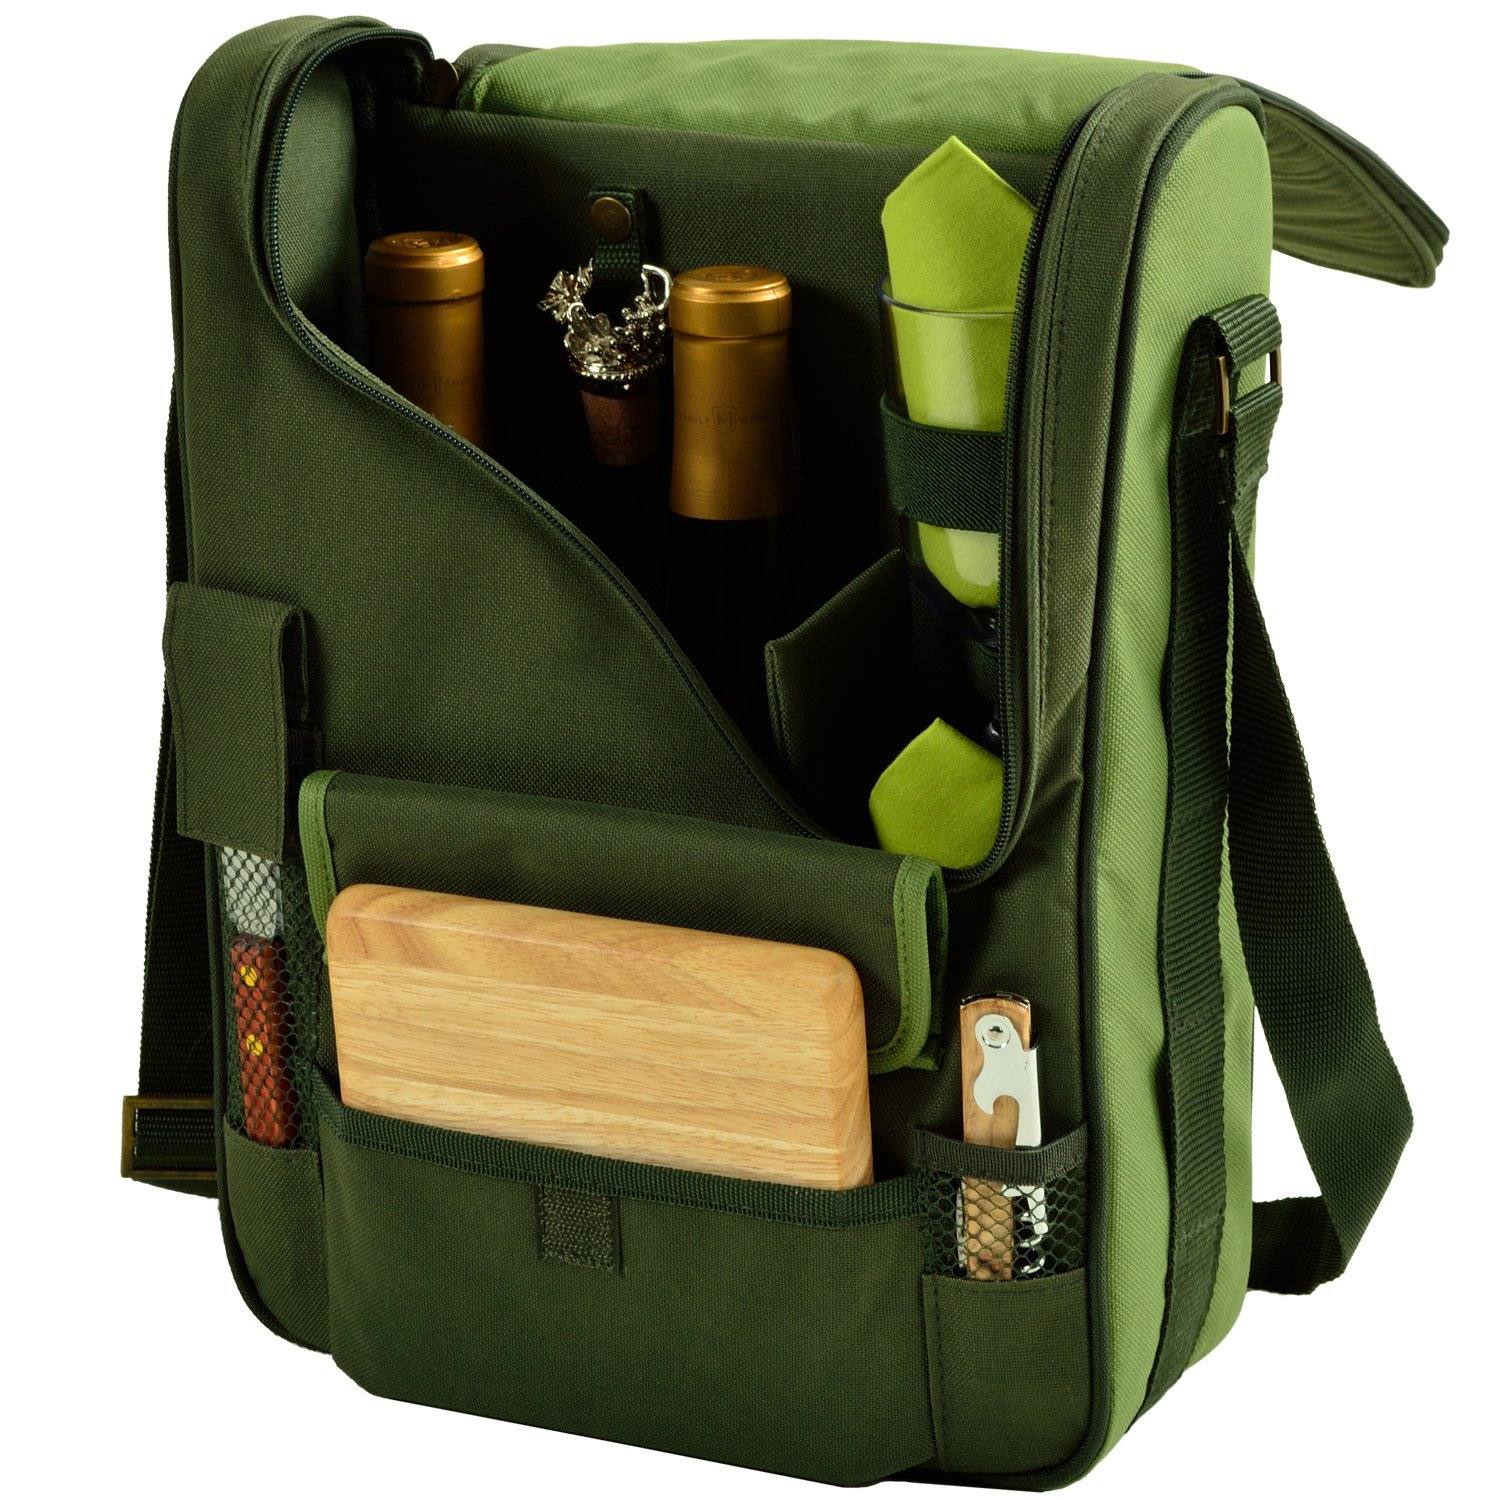 Picnic at Ascot Insulated 2 Wine Bottle Bag with Corkscrew & Shoulder Strap